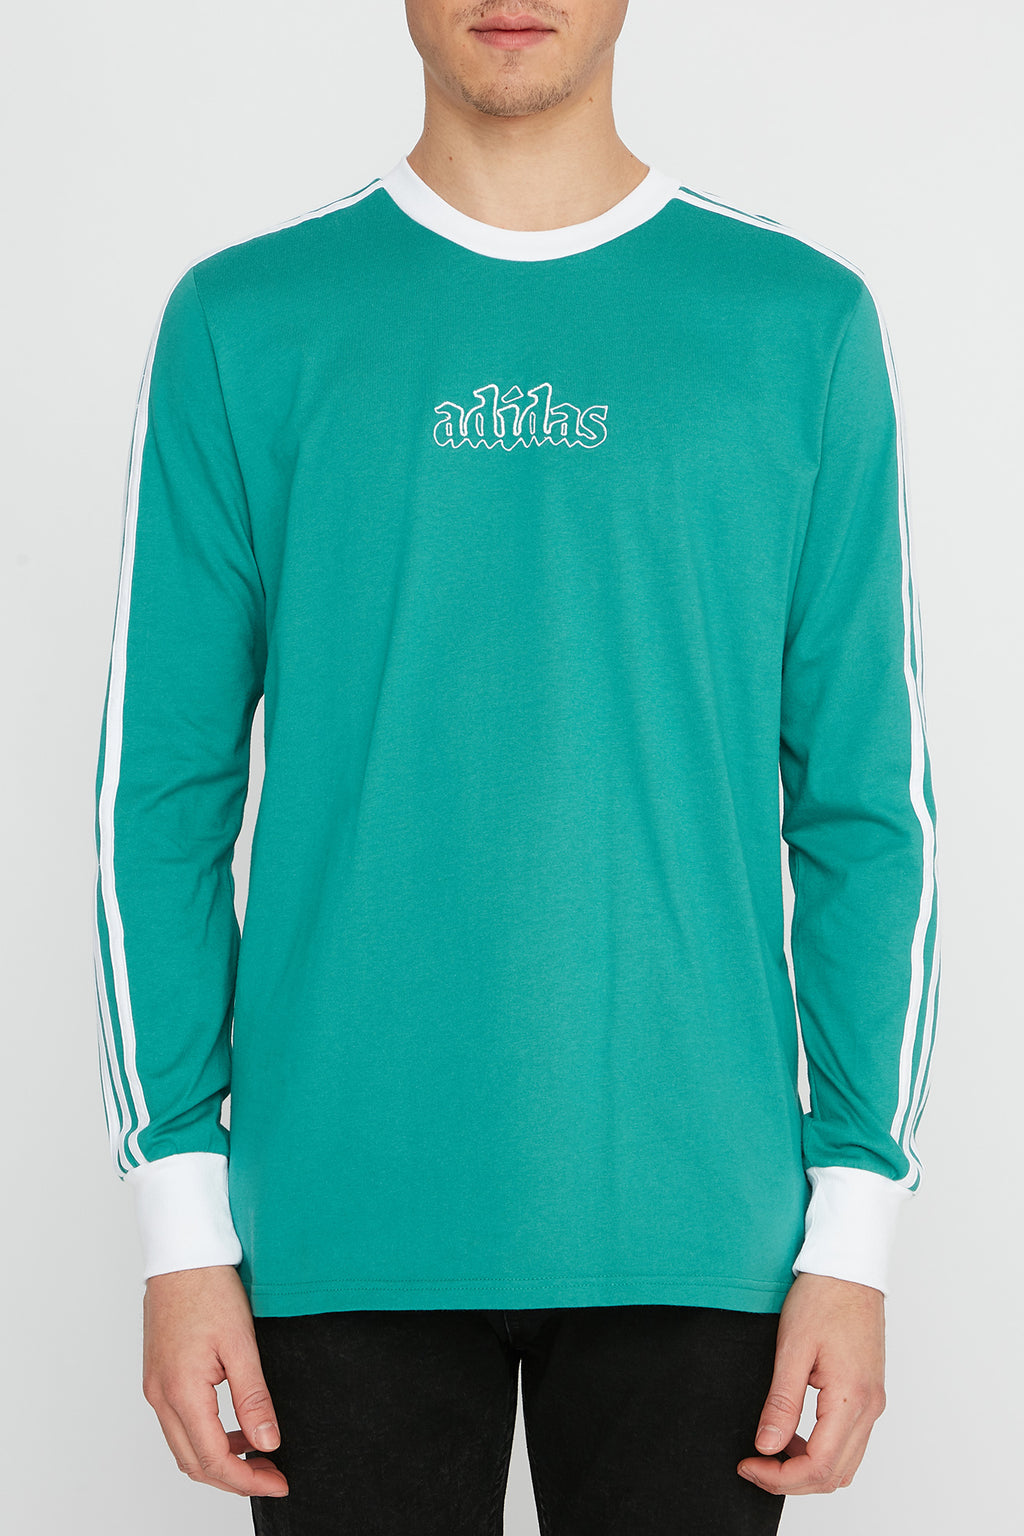 Adidas Creston Long Sleeve